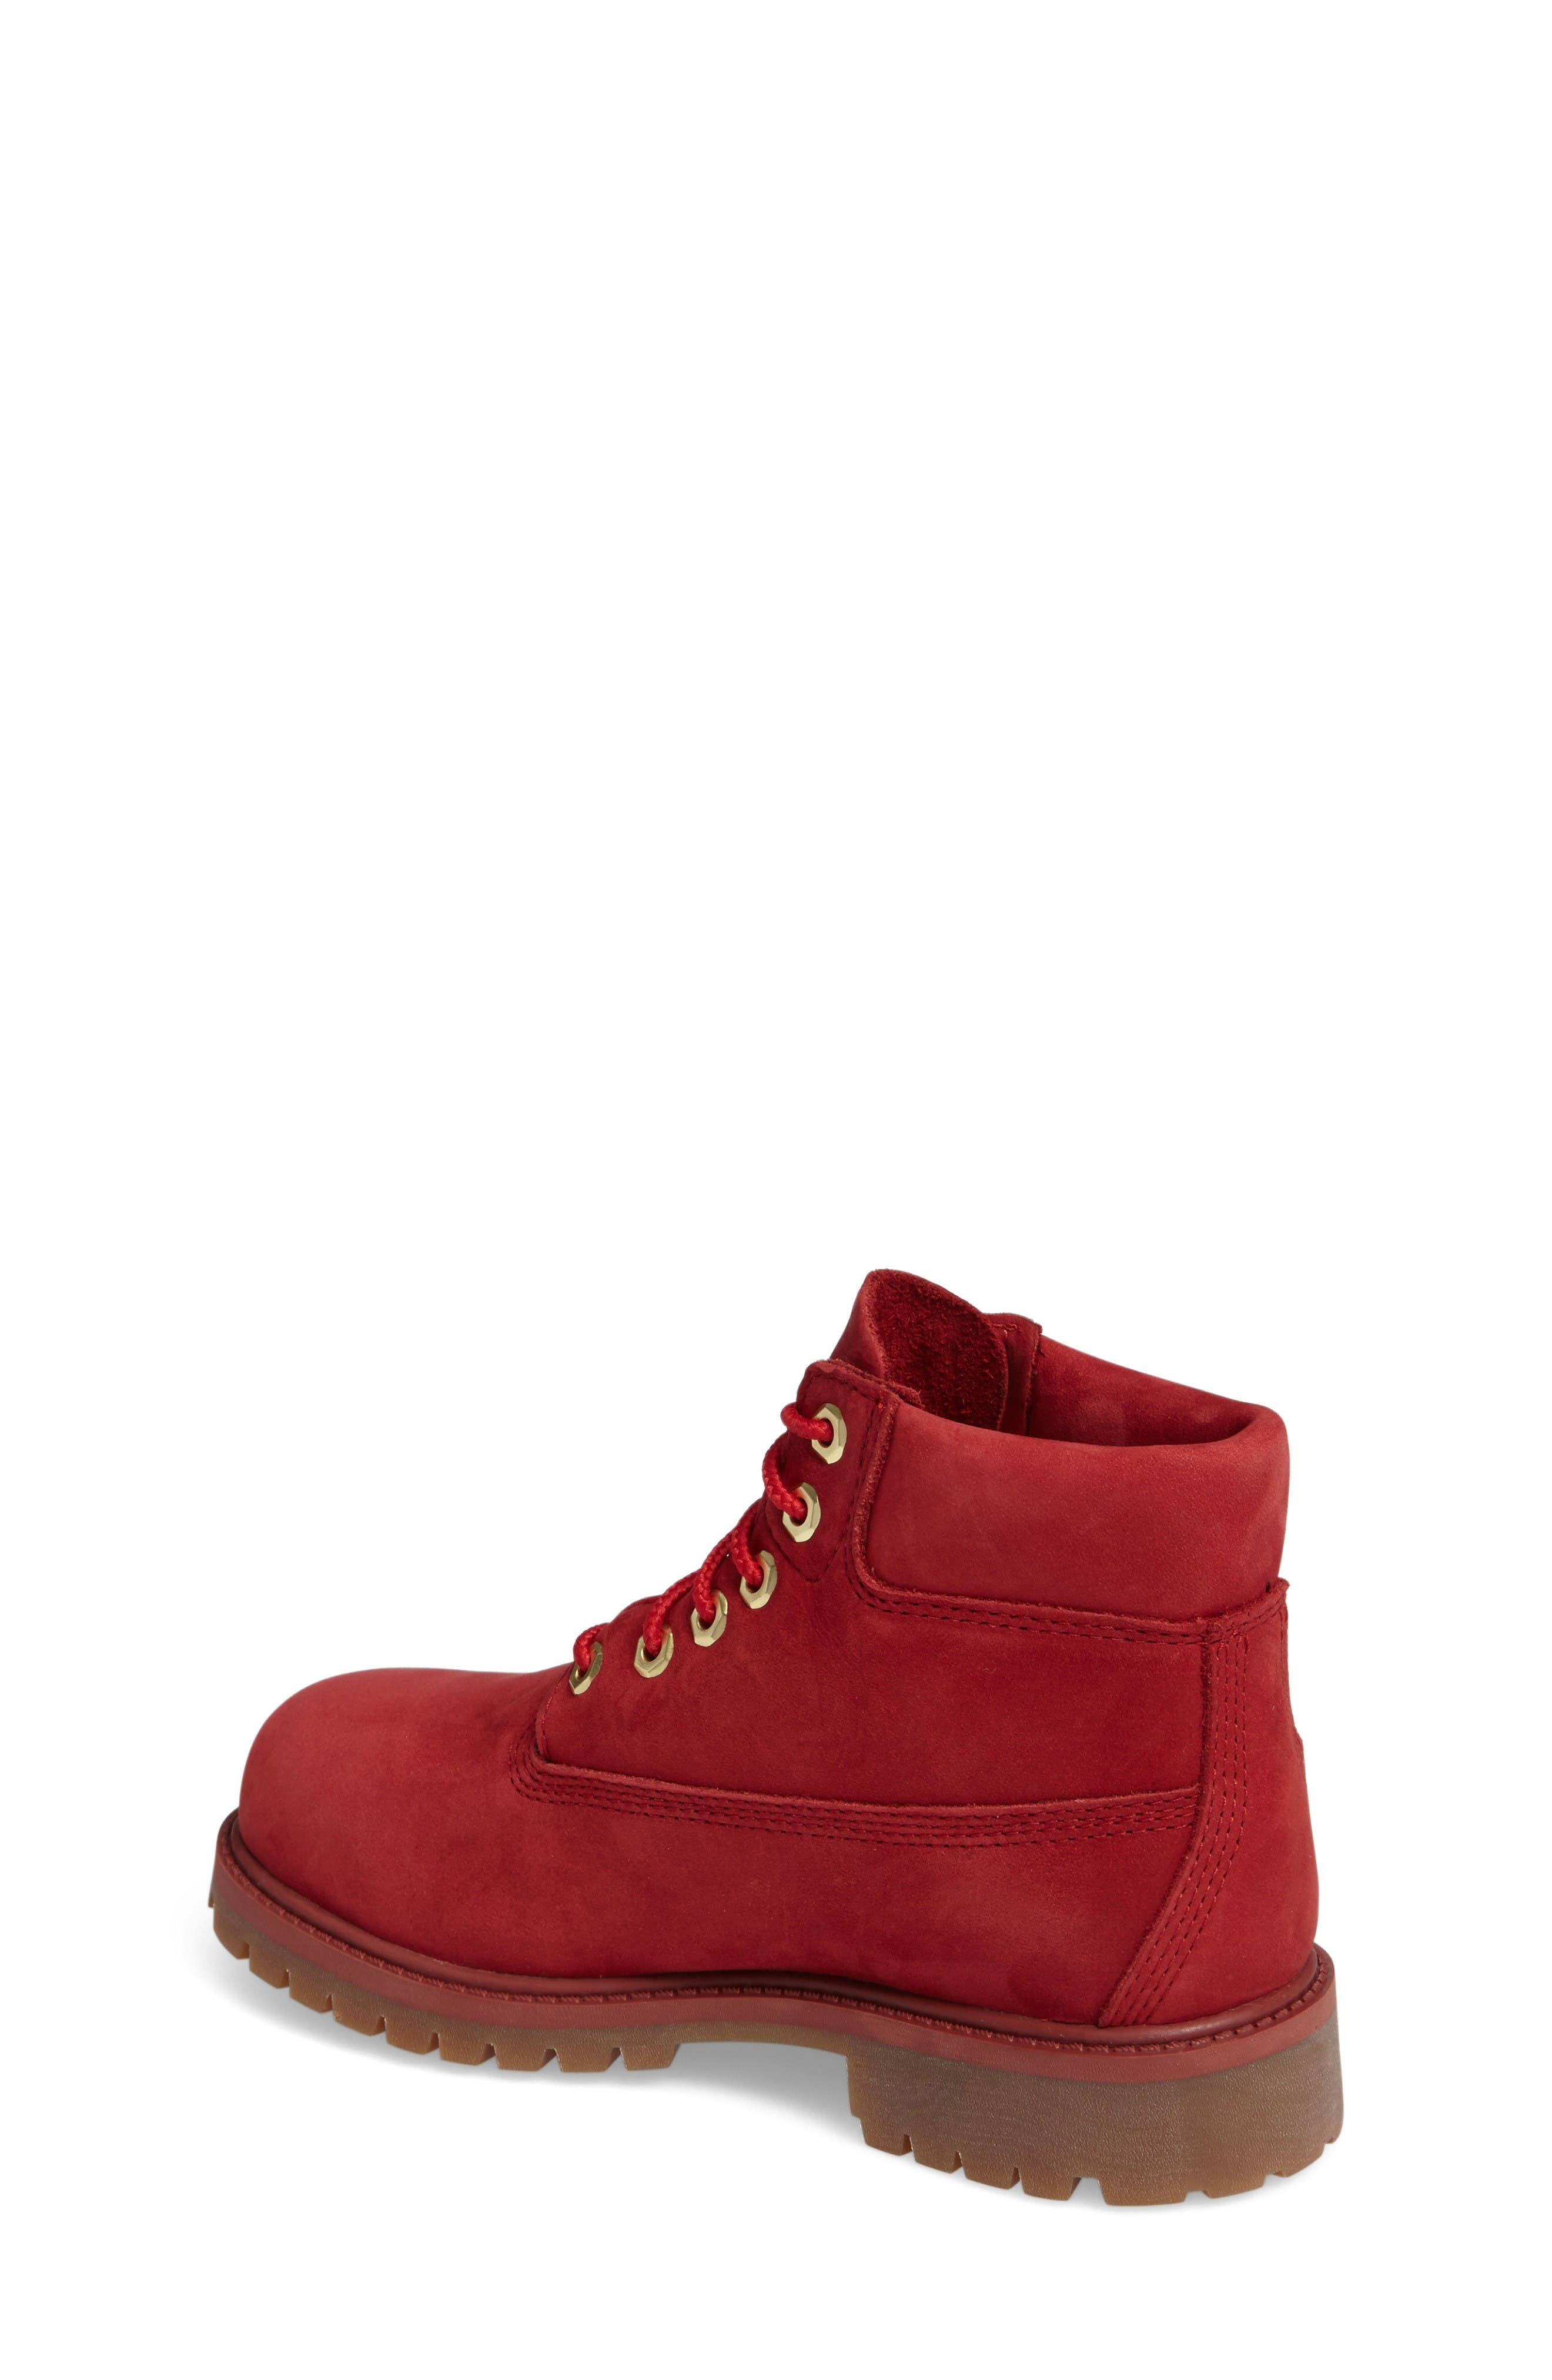 40th Anniversary Ruby Red Waterproof Boot,                             Alternate thumbnail 2, color,                             Ruby Red Waterbuck